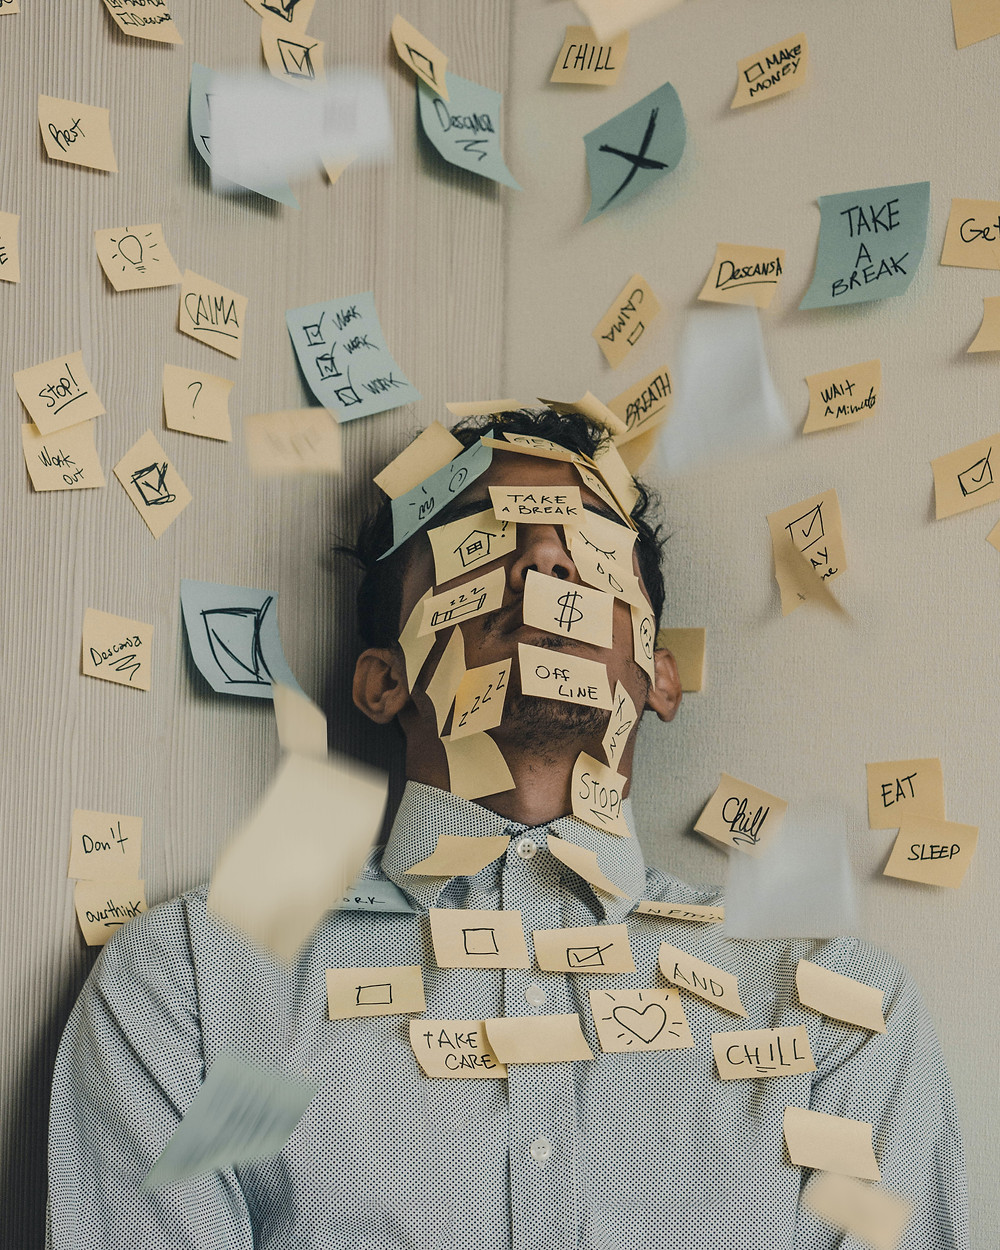 A man lying down covered in post-It notes